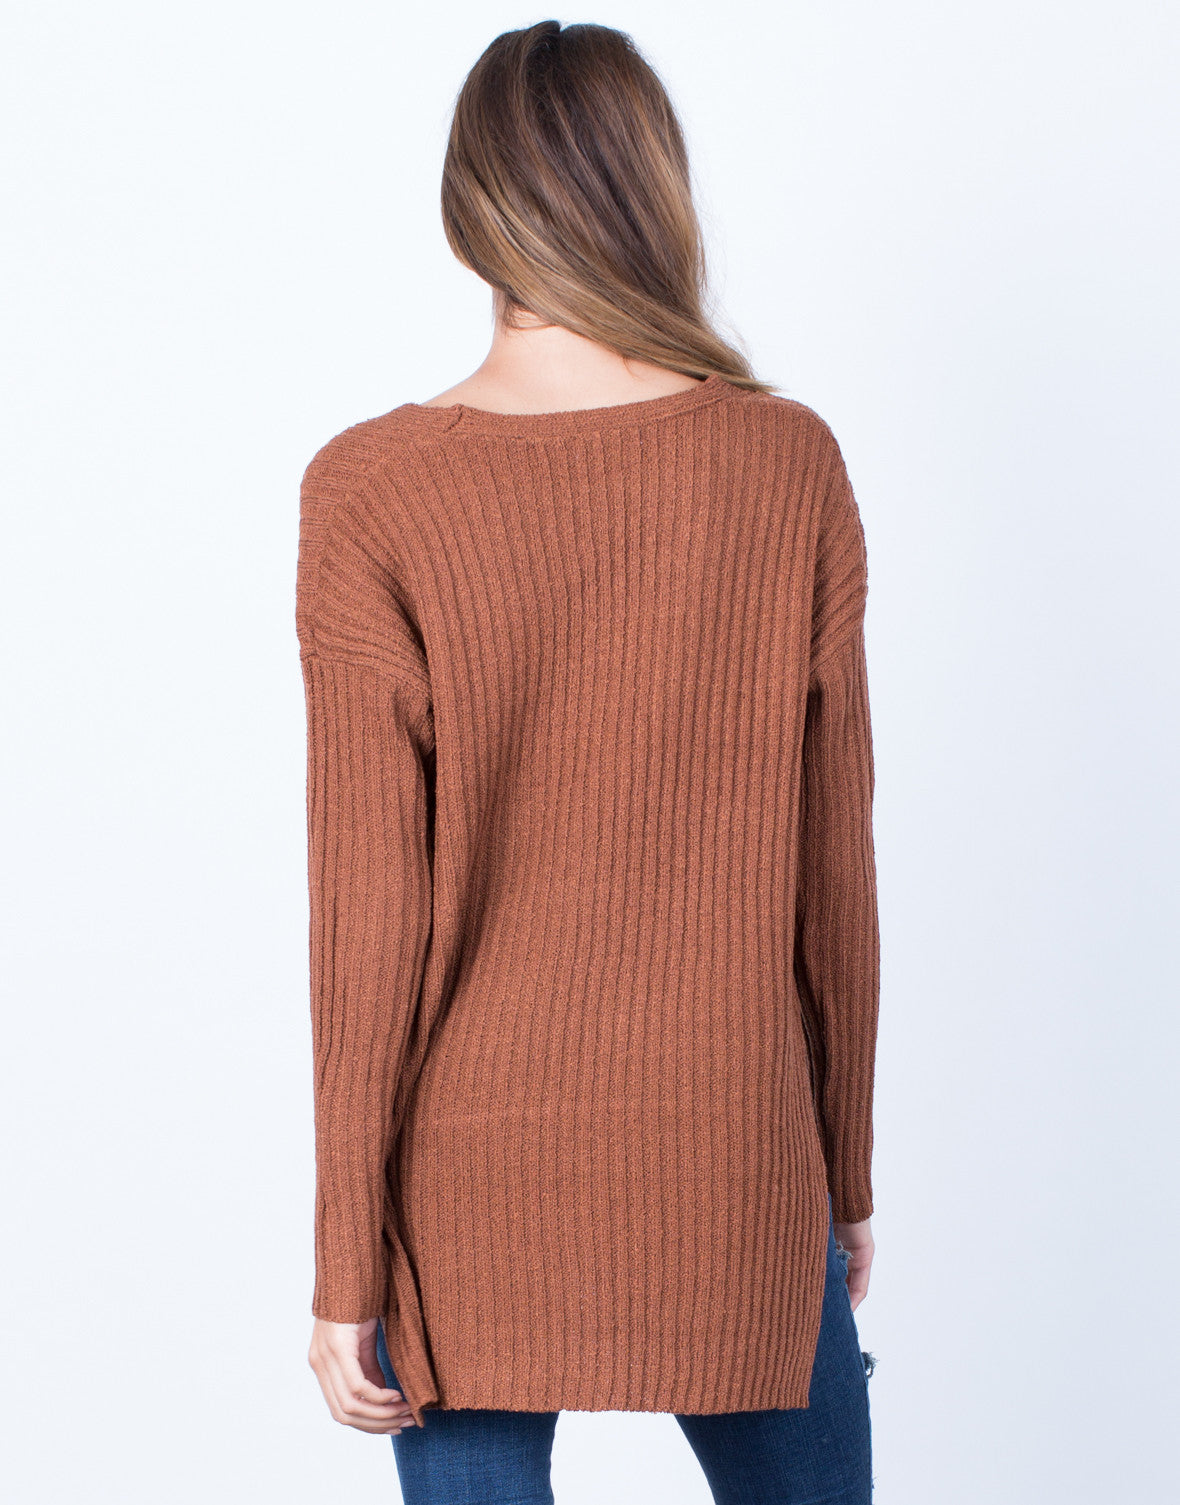 Back View of Cozy V-Neck Sweater Top